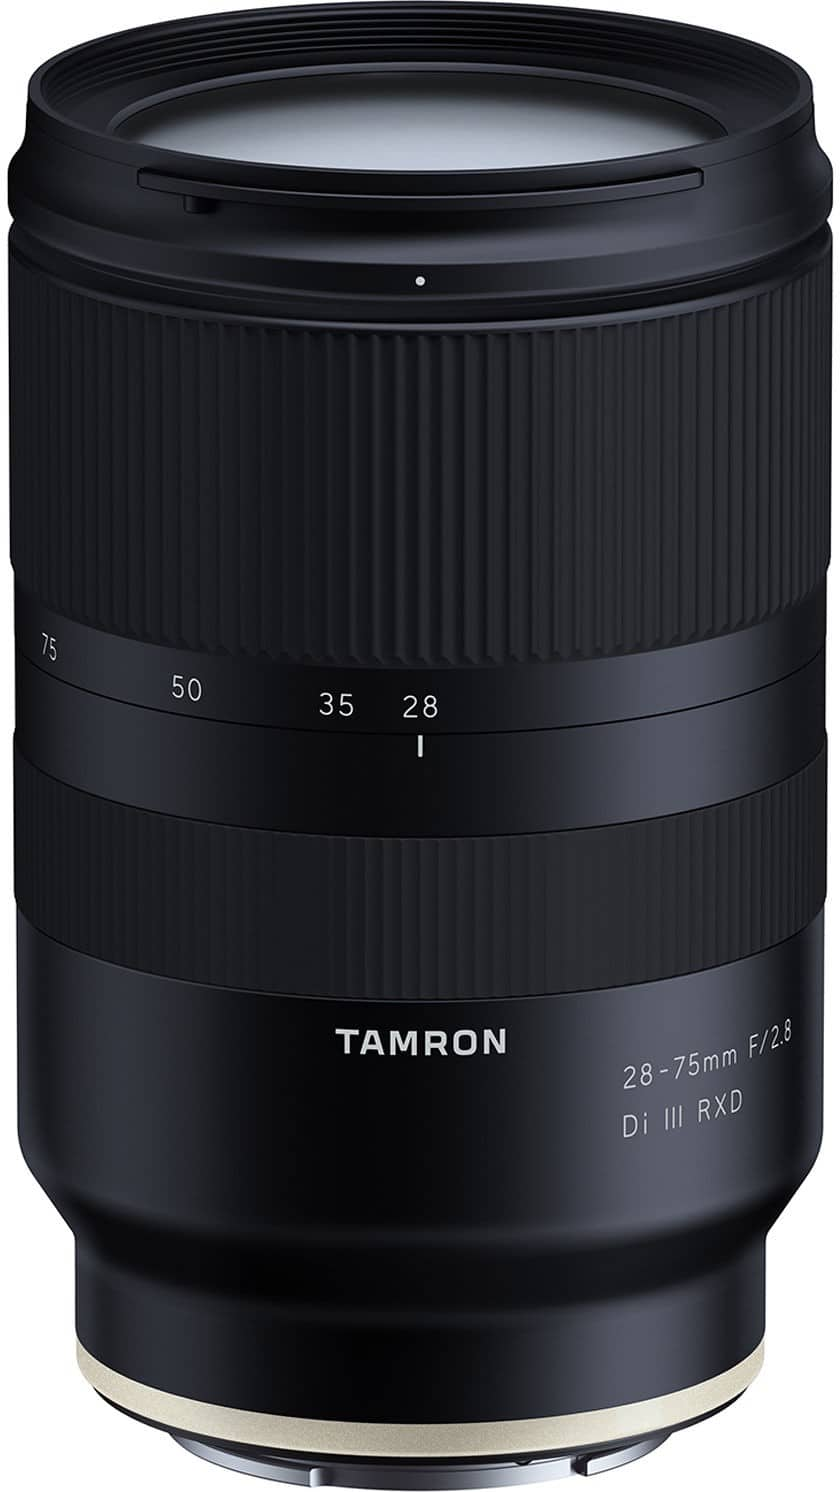 PSA: Tamron 28-75mm f/2.8 Lens Sony E-mount Now IN STOCK @ Focus Camera for $799.00